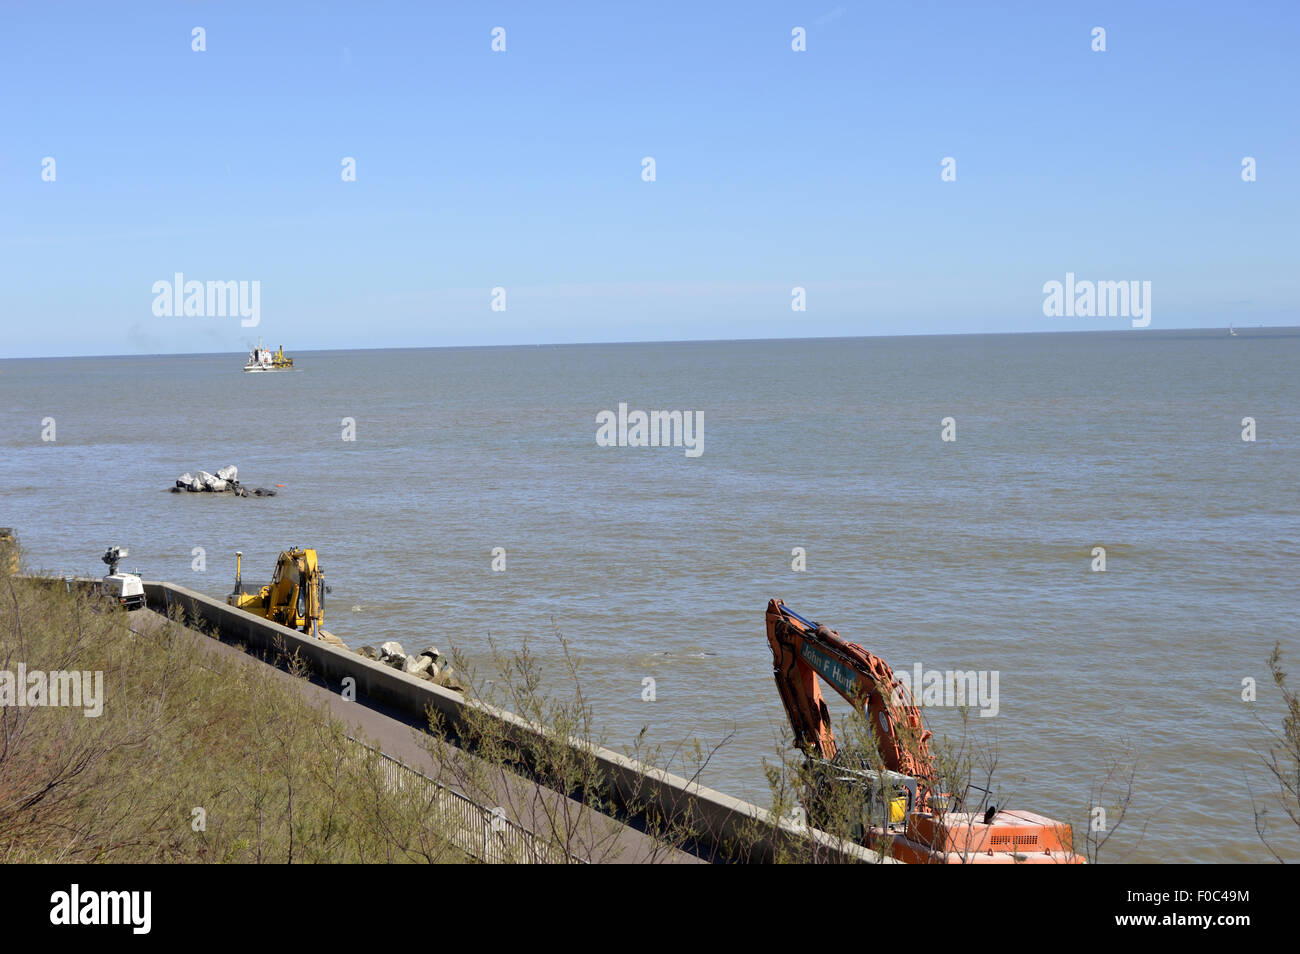 work being carried out on the new sea defences for the Clacton sea defences, to protect against erosion. - Stock Image